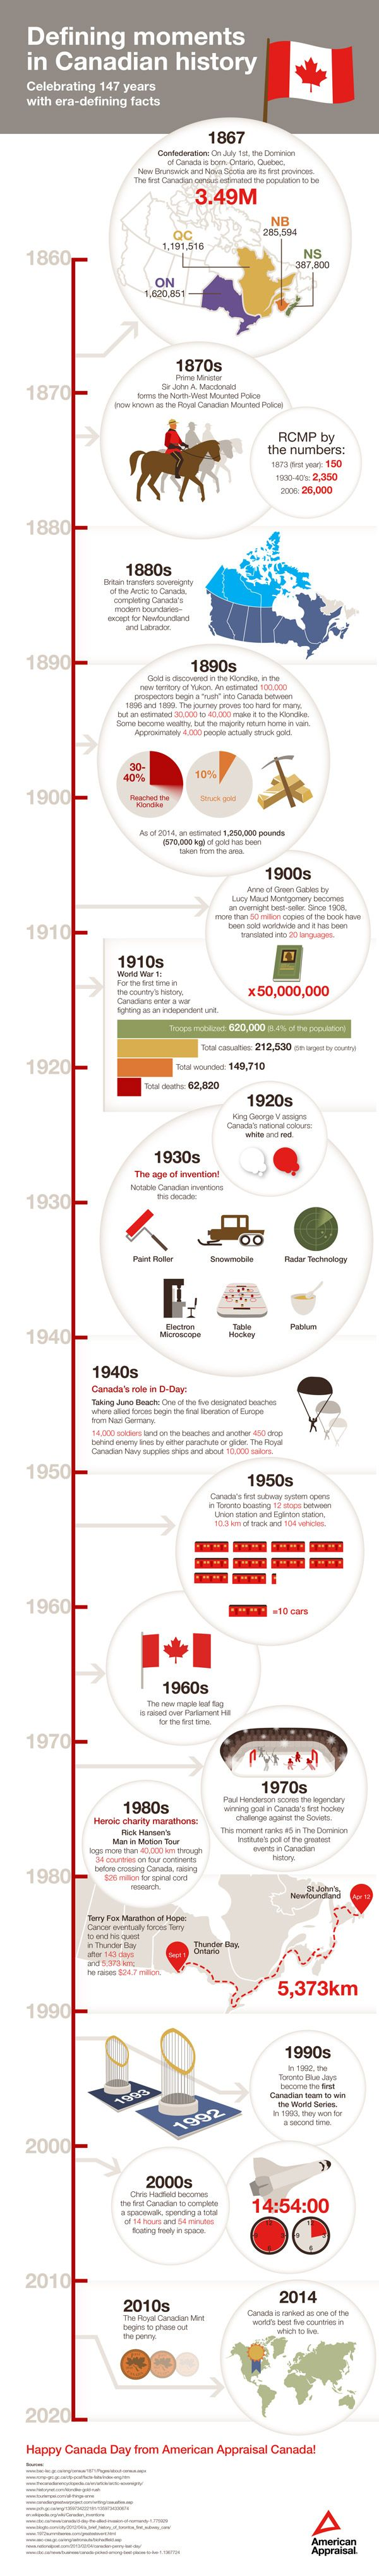 Defining Moments in Canadian History infographic